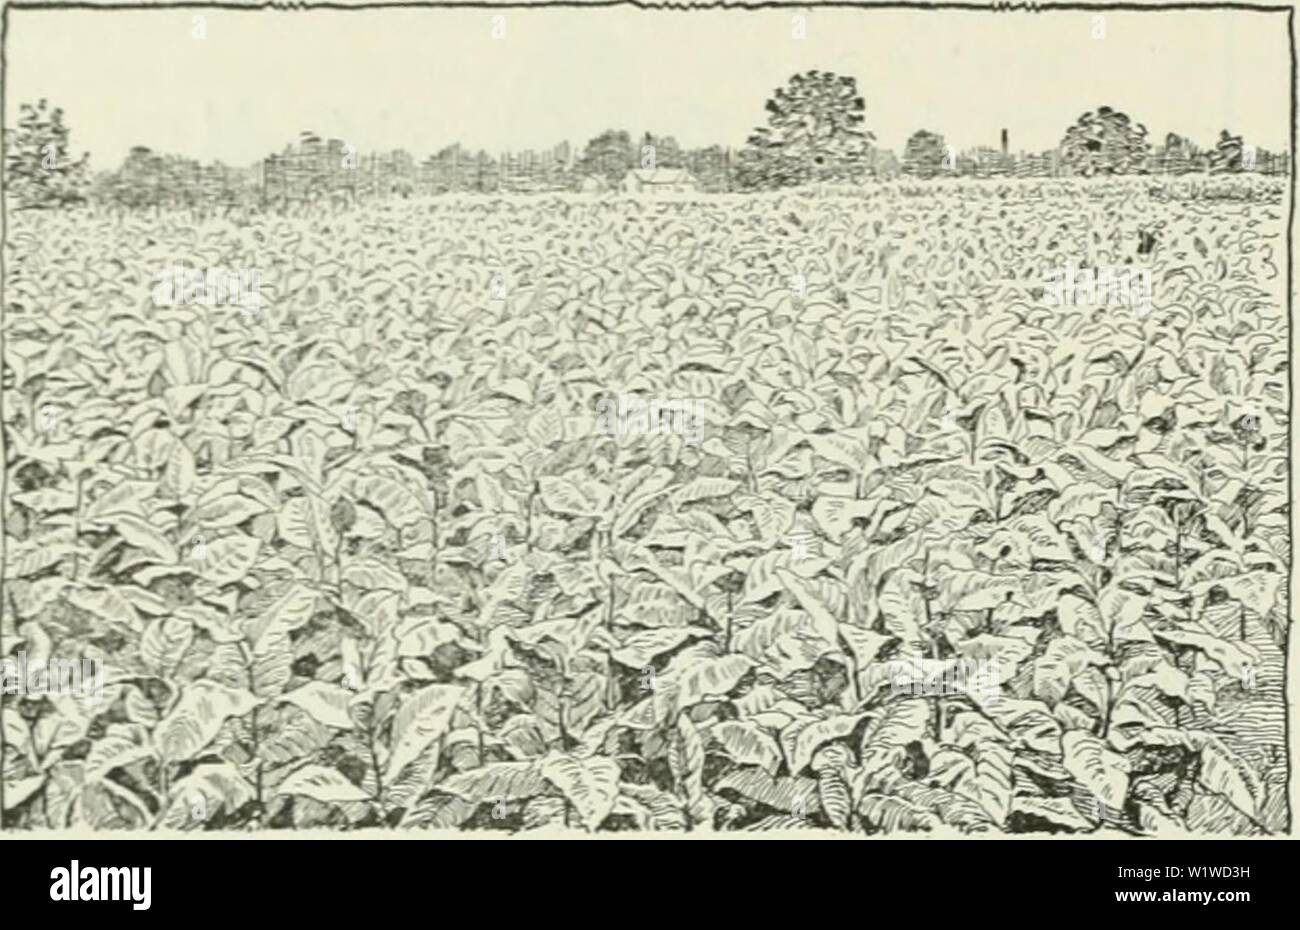 Archive image from page 715 of Cyclopedia of farm crops . Cyclopedia of farm crops : a popular survey of crops and crop-making methods in the United States and Canada  cyclopediaoffarm00bailuoft Year: 1922, c1907 646 TOBACCO TOBACCO cable to inter-till the tobacco until shortly before the top leaves are taken otf. In dry seasons this serves to retain the soil moisture by preventing excess evaporation due to soil capillarity. When the plants begin to bud, all except the in- dividual plants saved for seed purposes should be    Fig. 872. Tobacco-field in Louisiana. topped. Xo very definite rule c - Stock Image